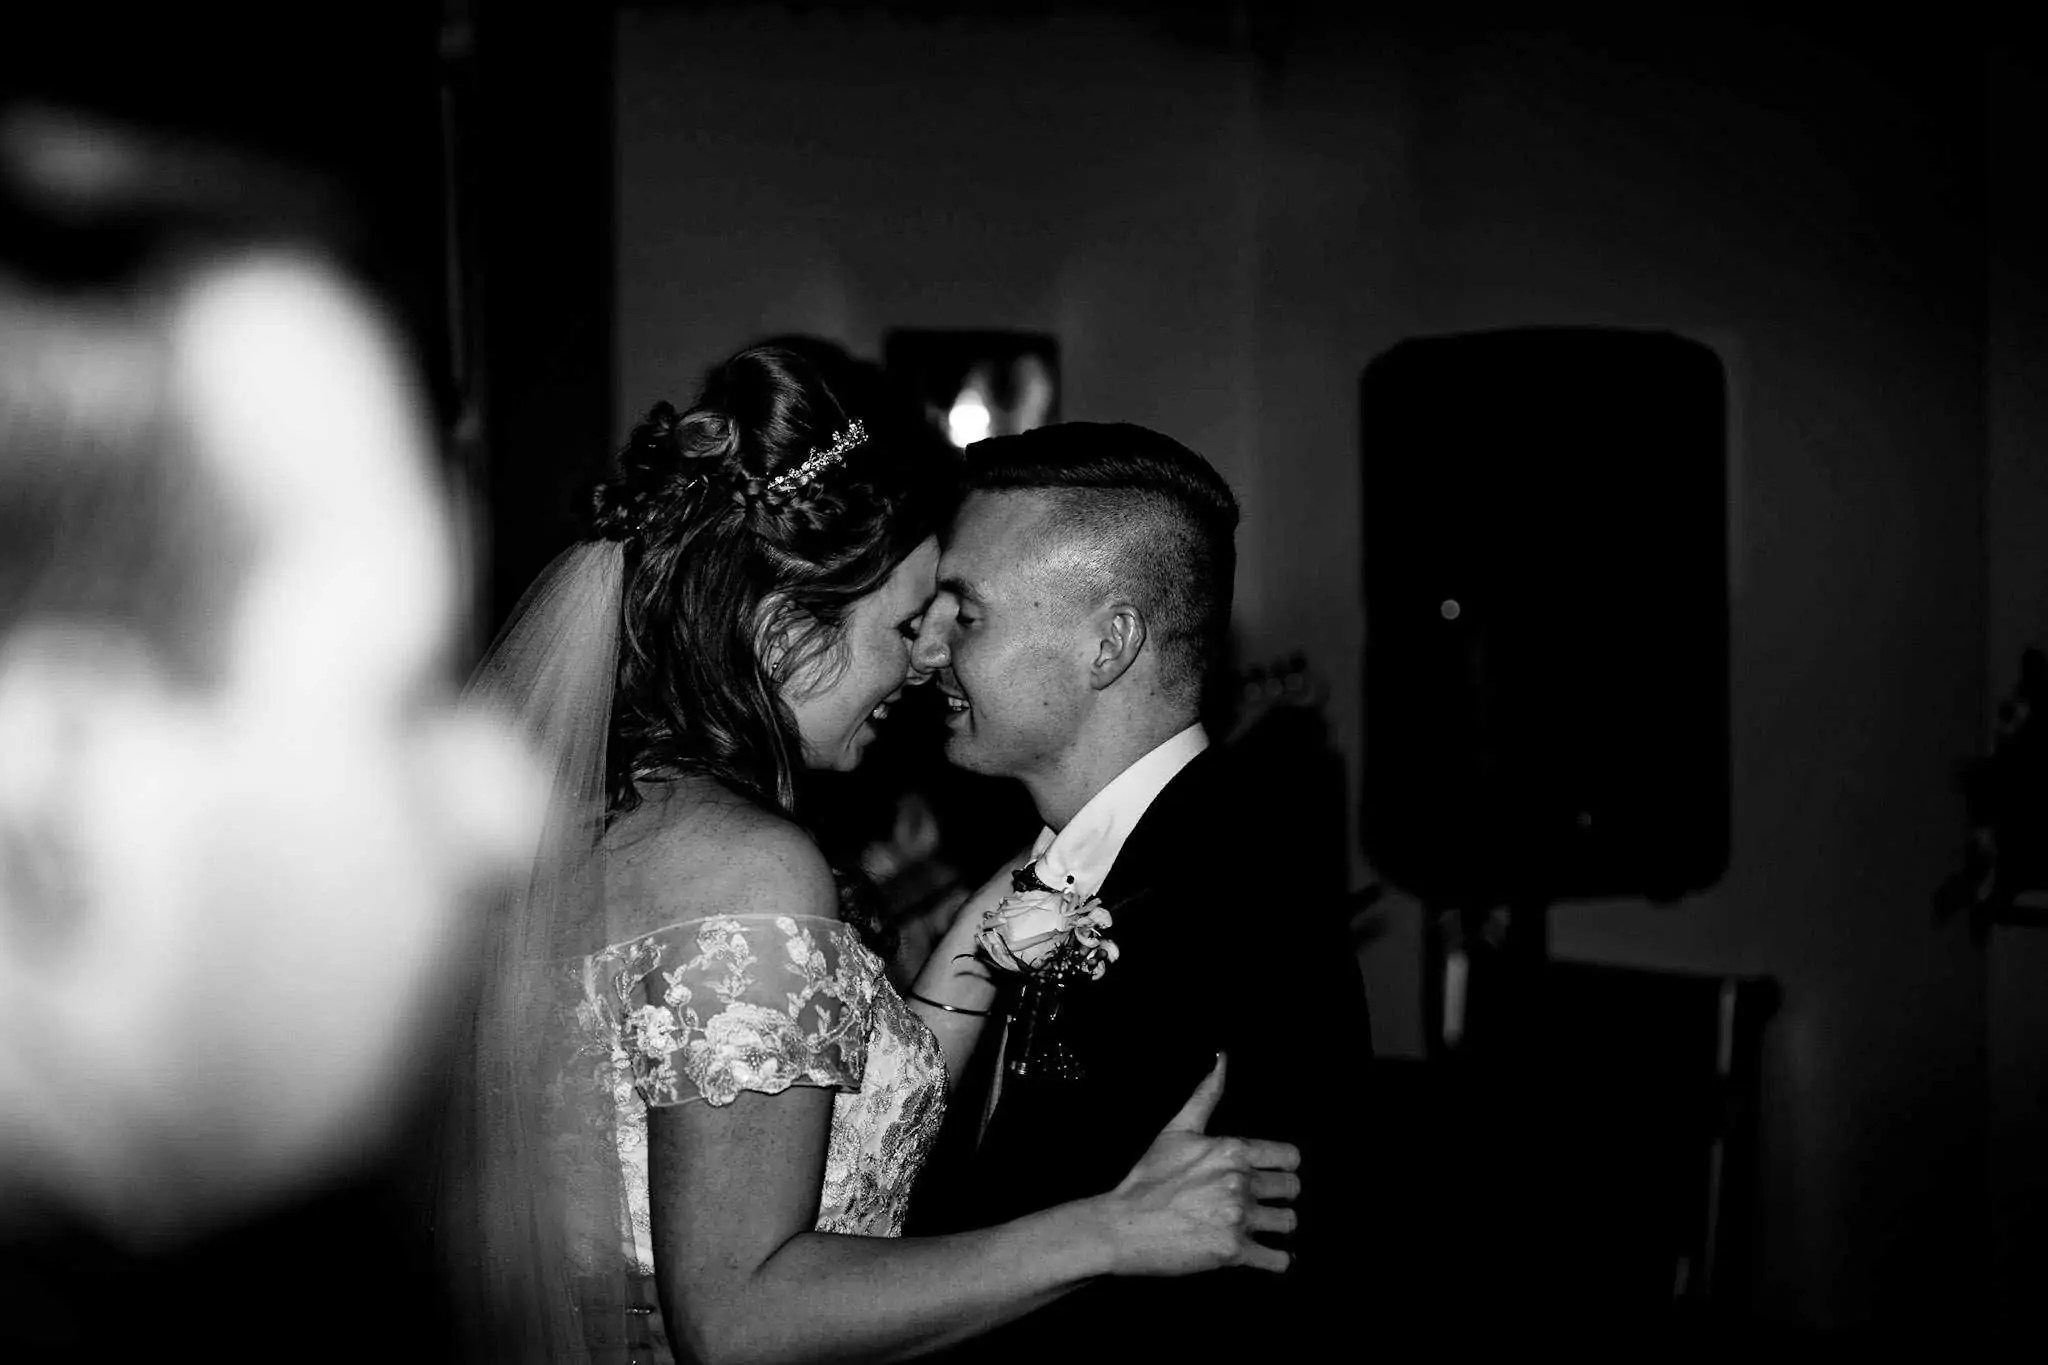 A bride and groom sharing an intimate moment during their first dance